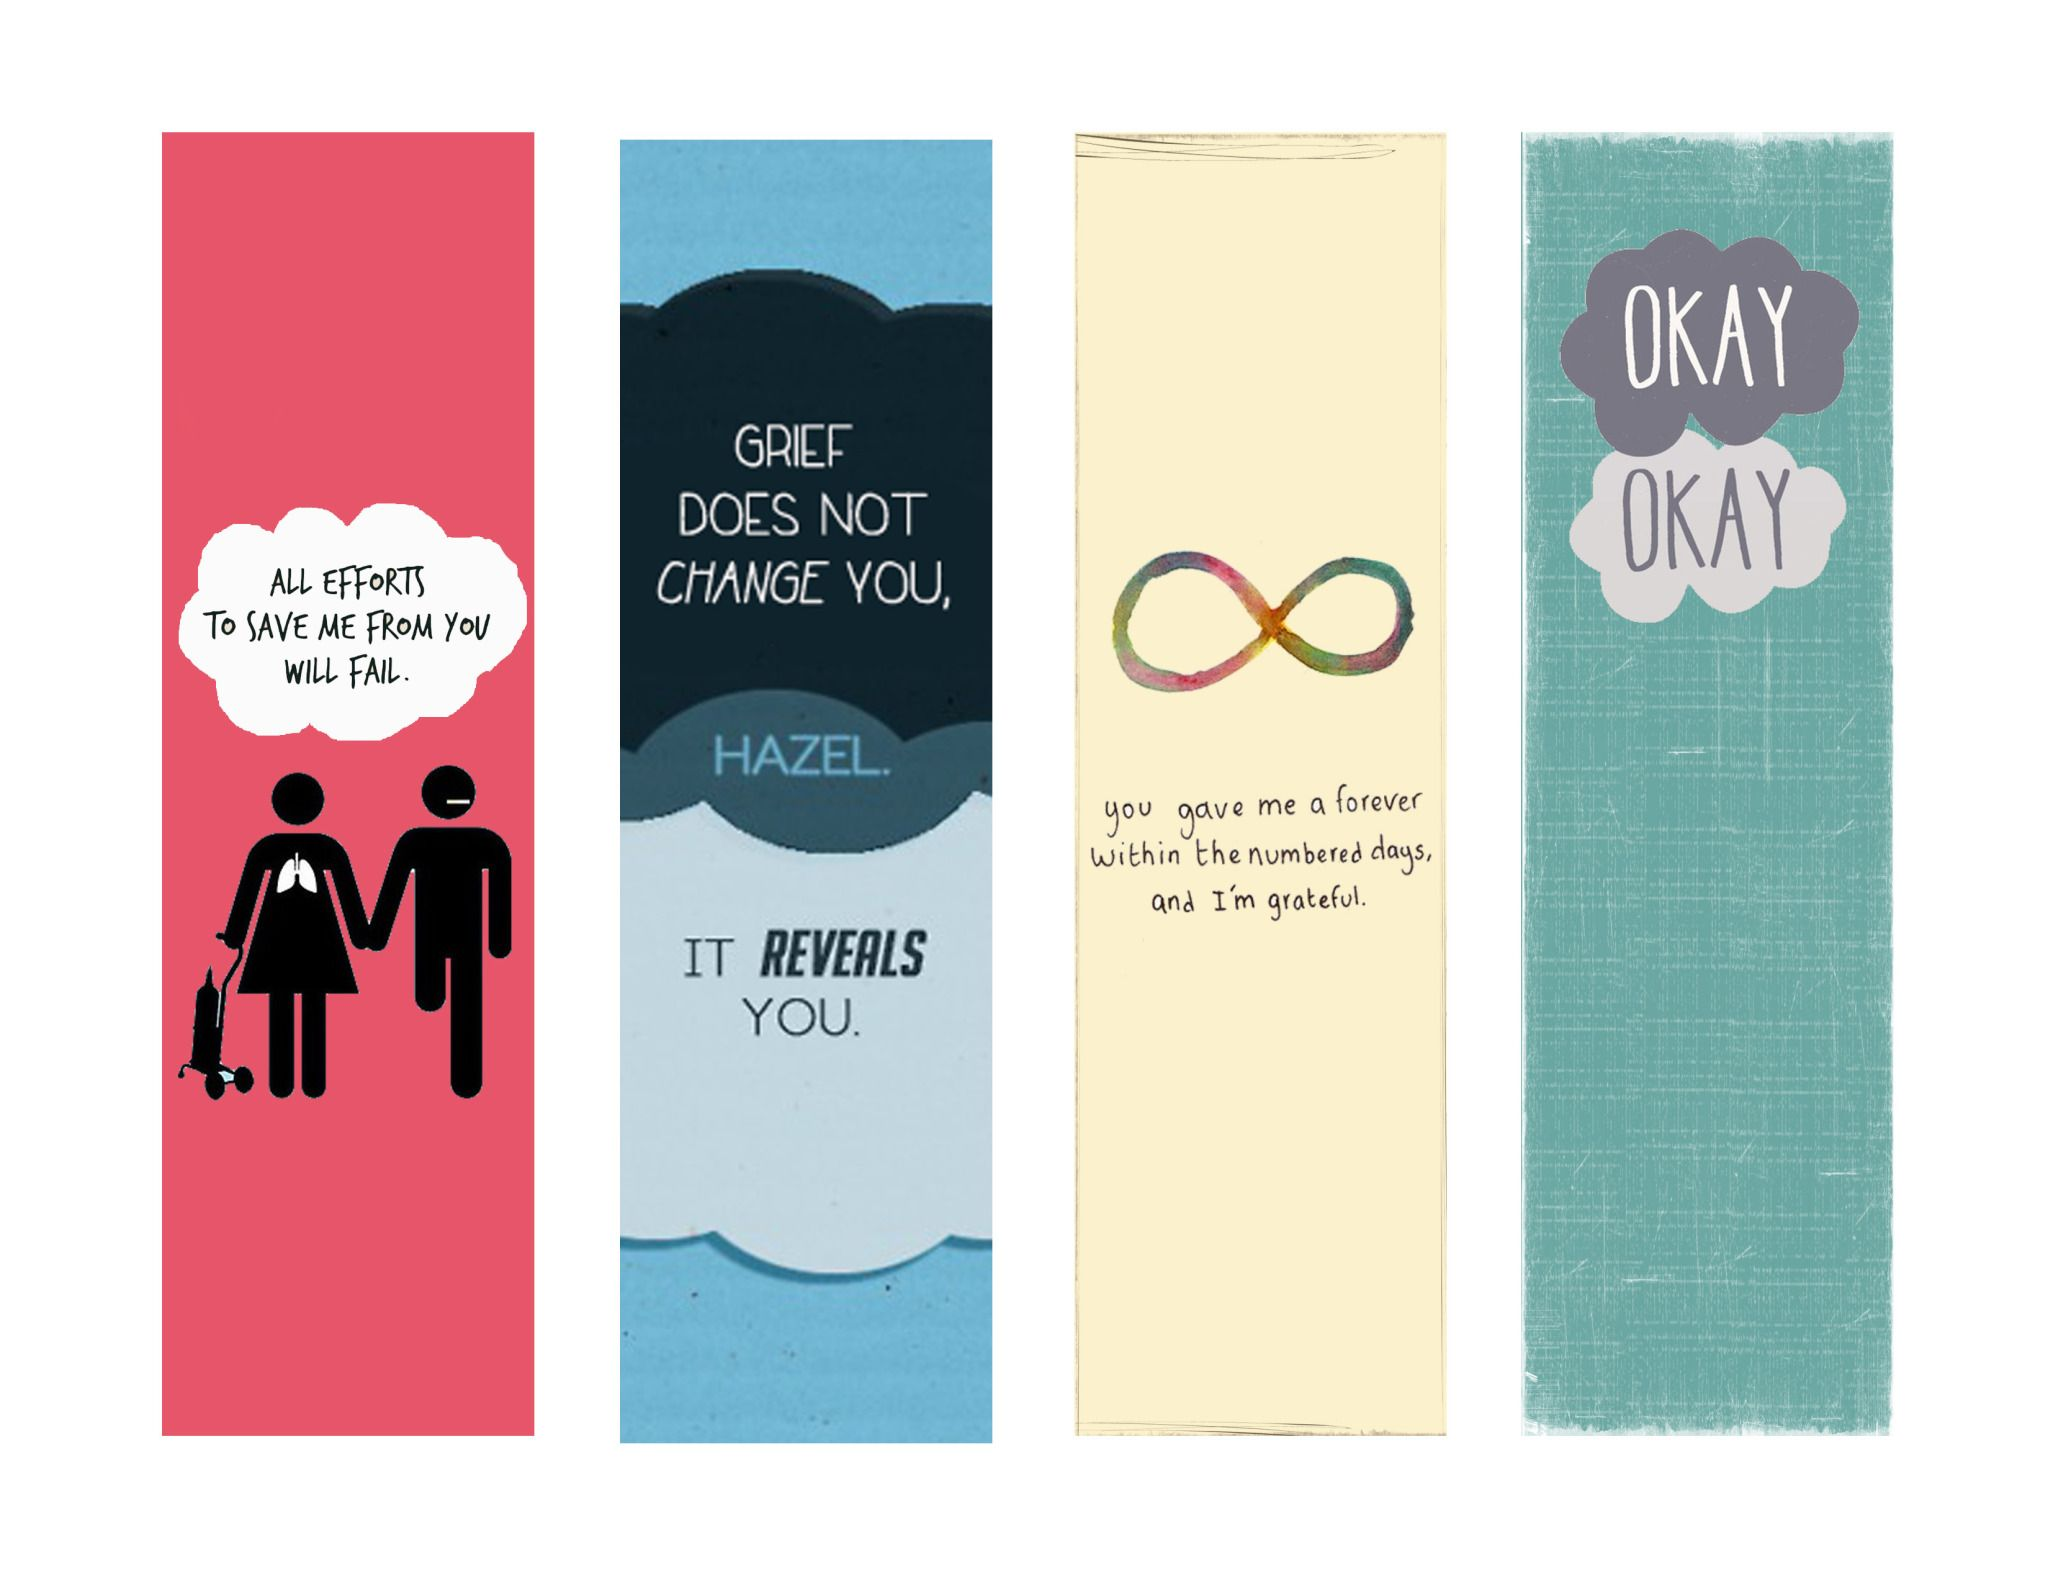 free printables the fault in our stars bookmarks_set 2jpg file shared from box